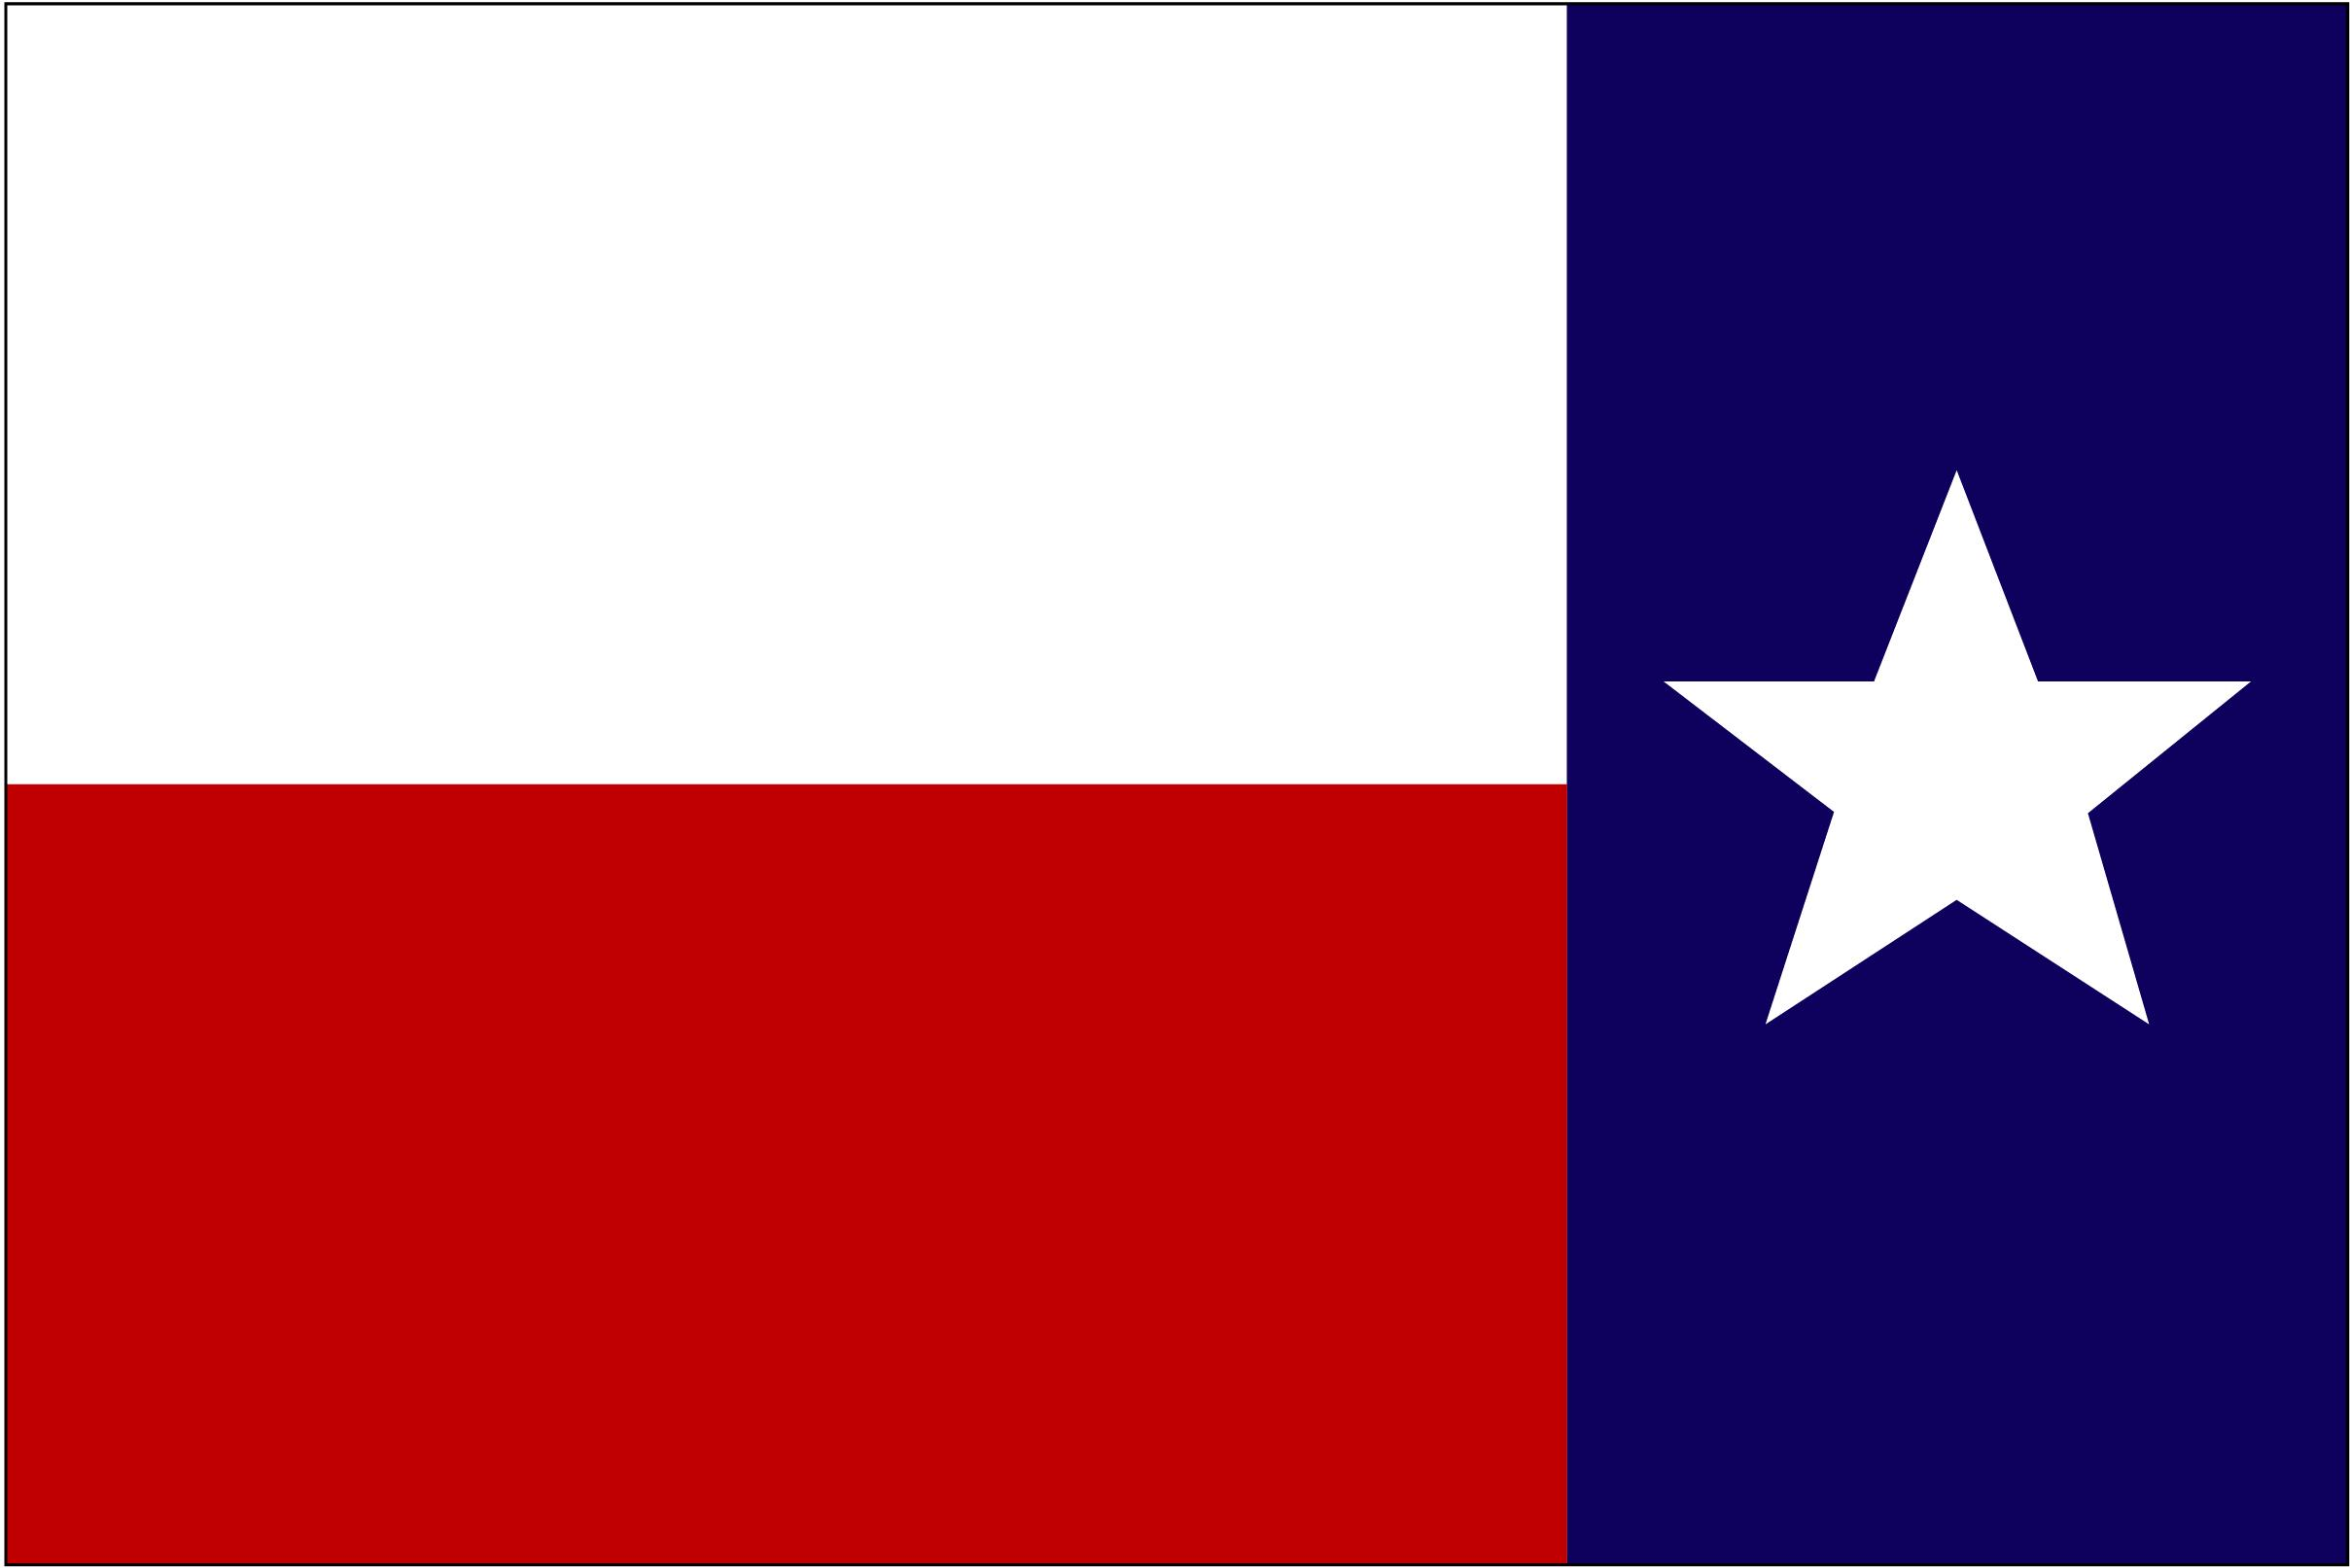 2417x1613 Unique Texas Flag Vector Format Image Free Vector Art, Images